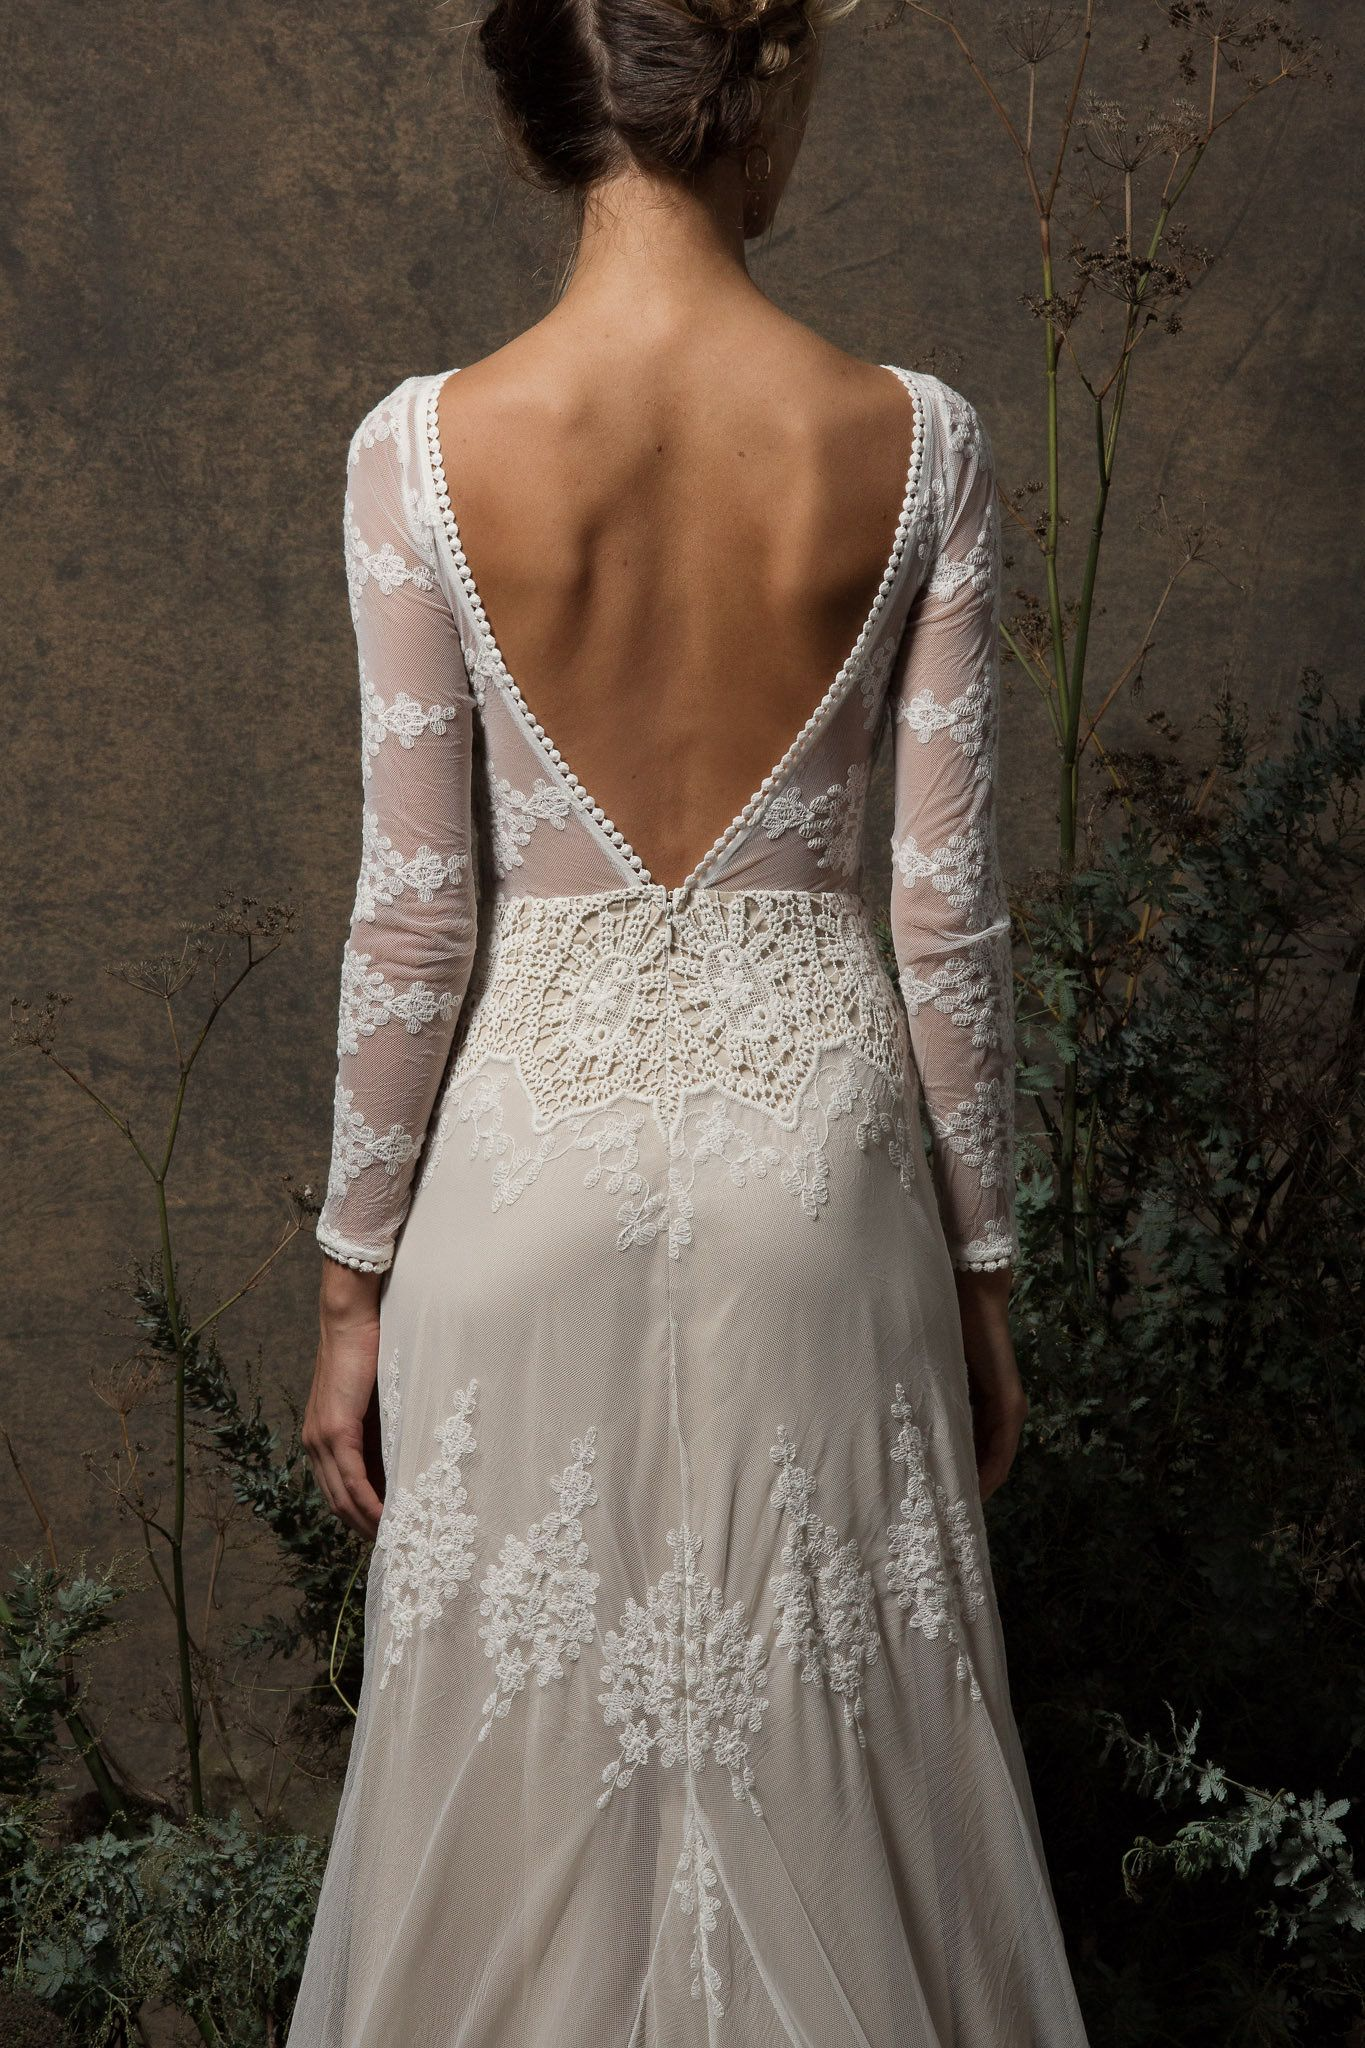 5a6b17300a3b3 dreamers-and-lovers-aurora-backless-wedding-dress-long-sleeved ...